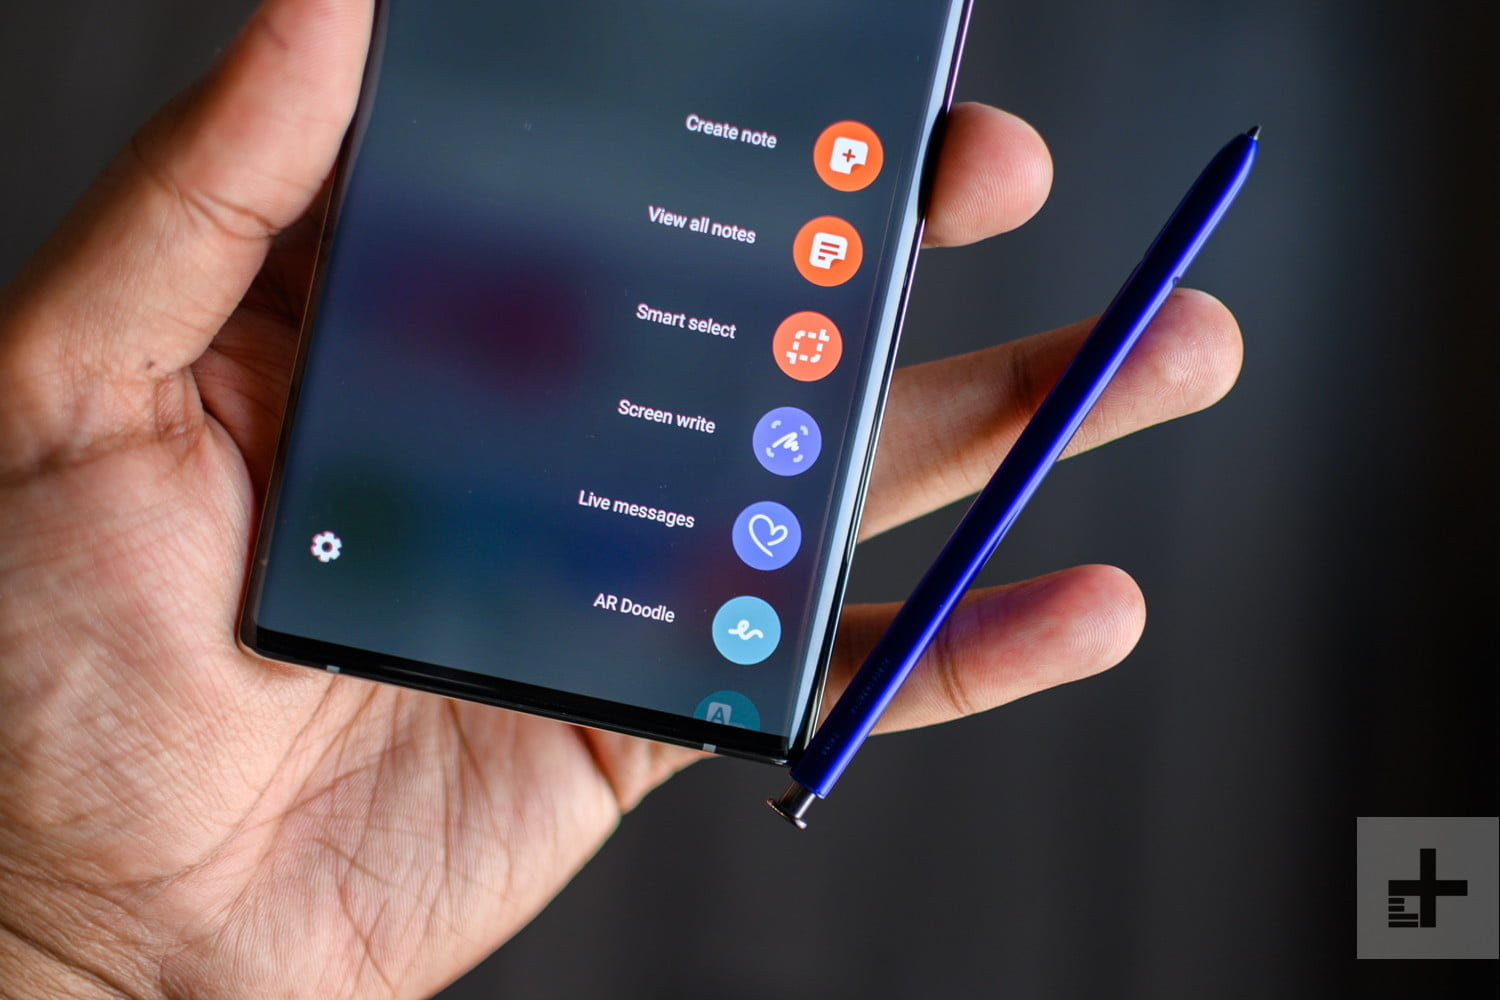 Samsung Galaxy Note 10 and Note 10 Plus: News, Price, Specs